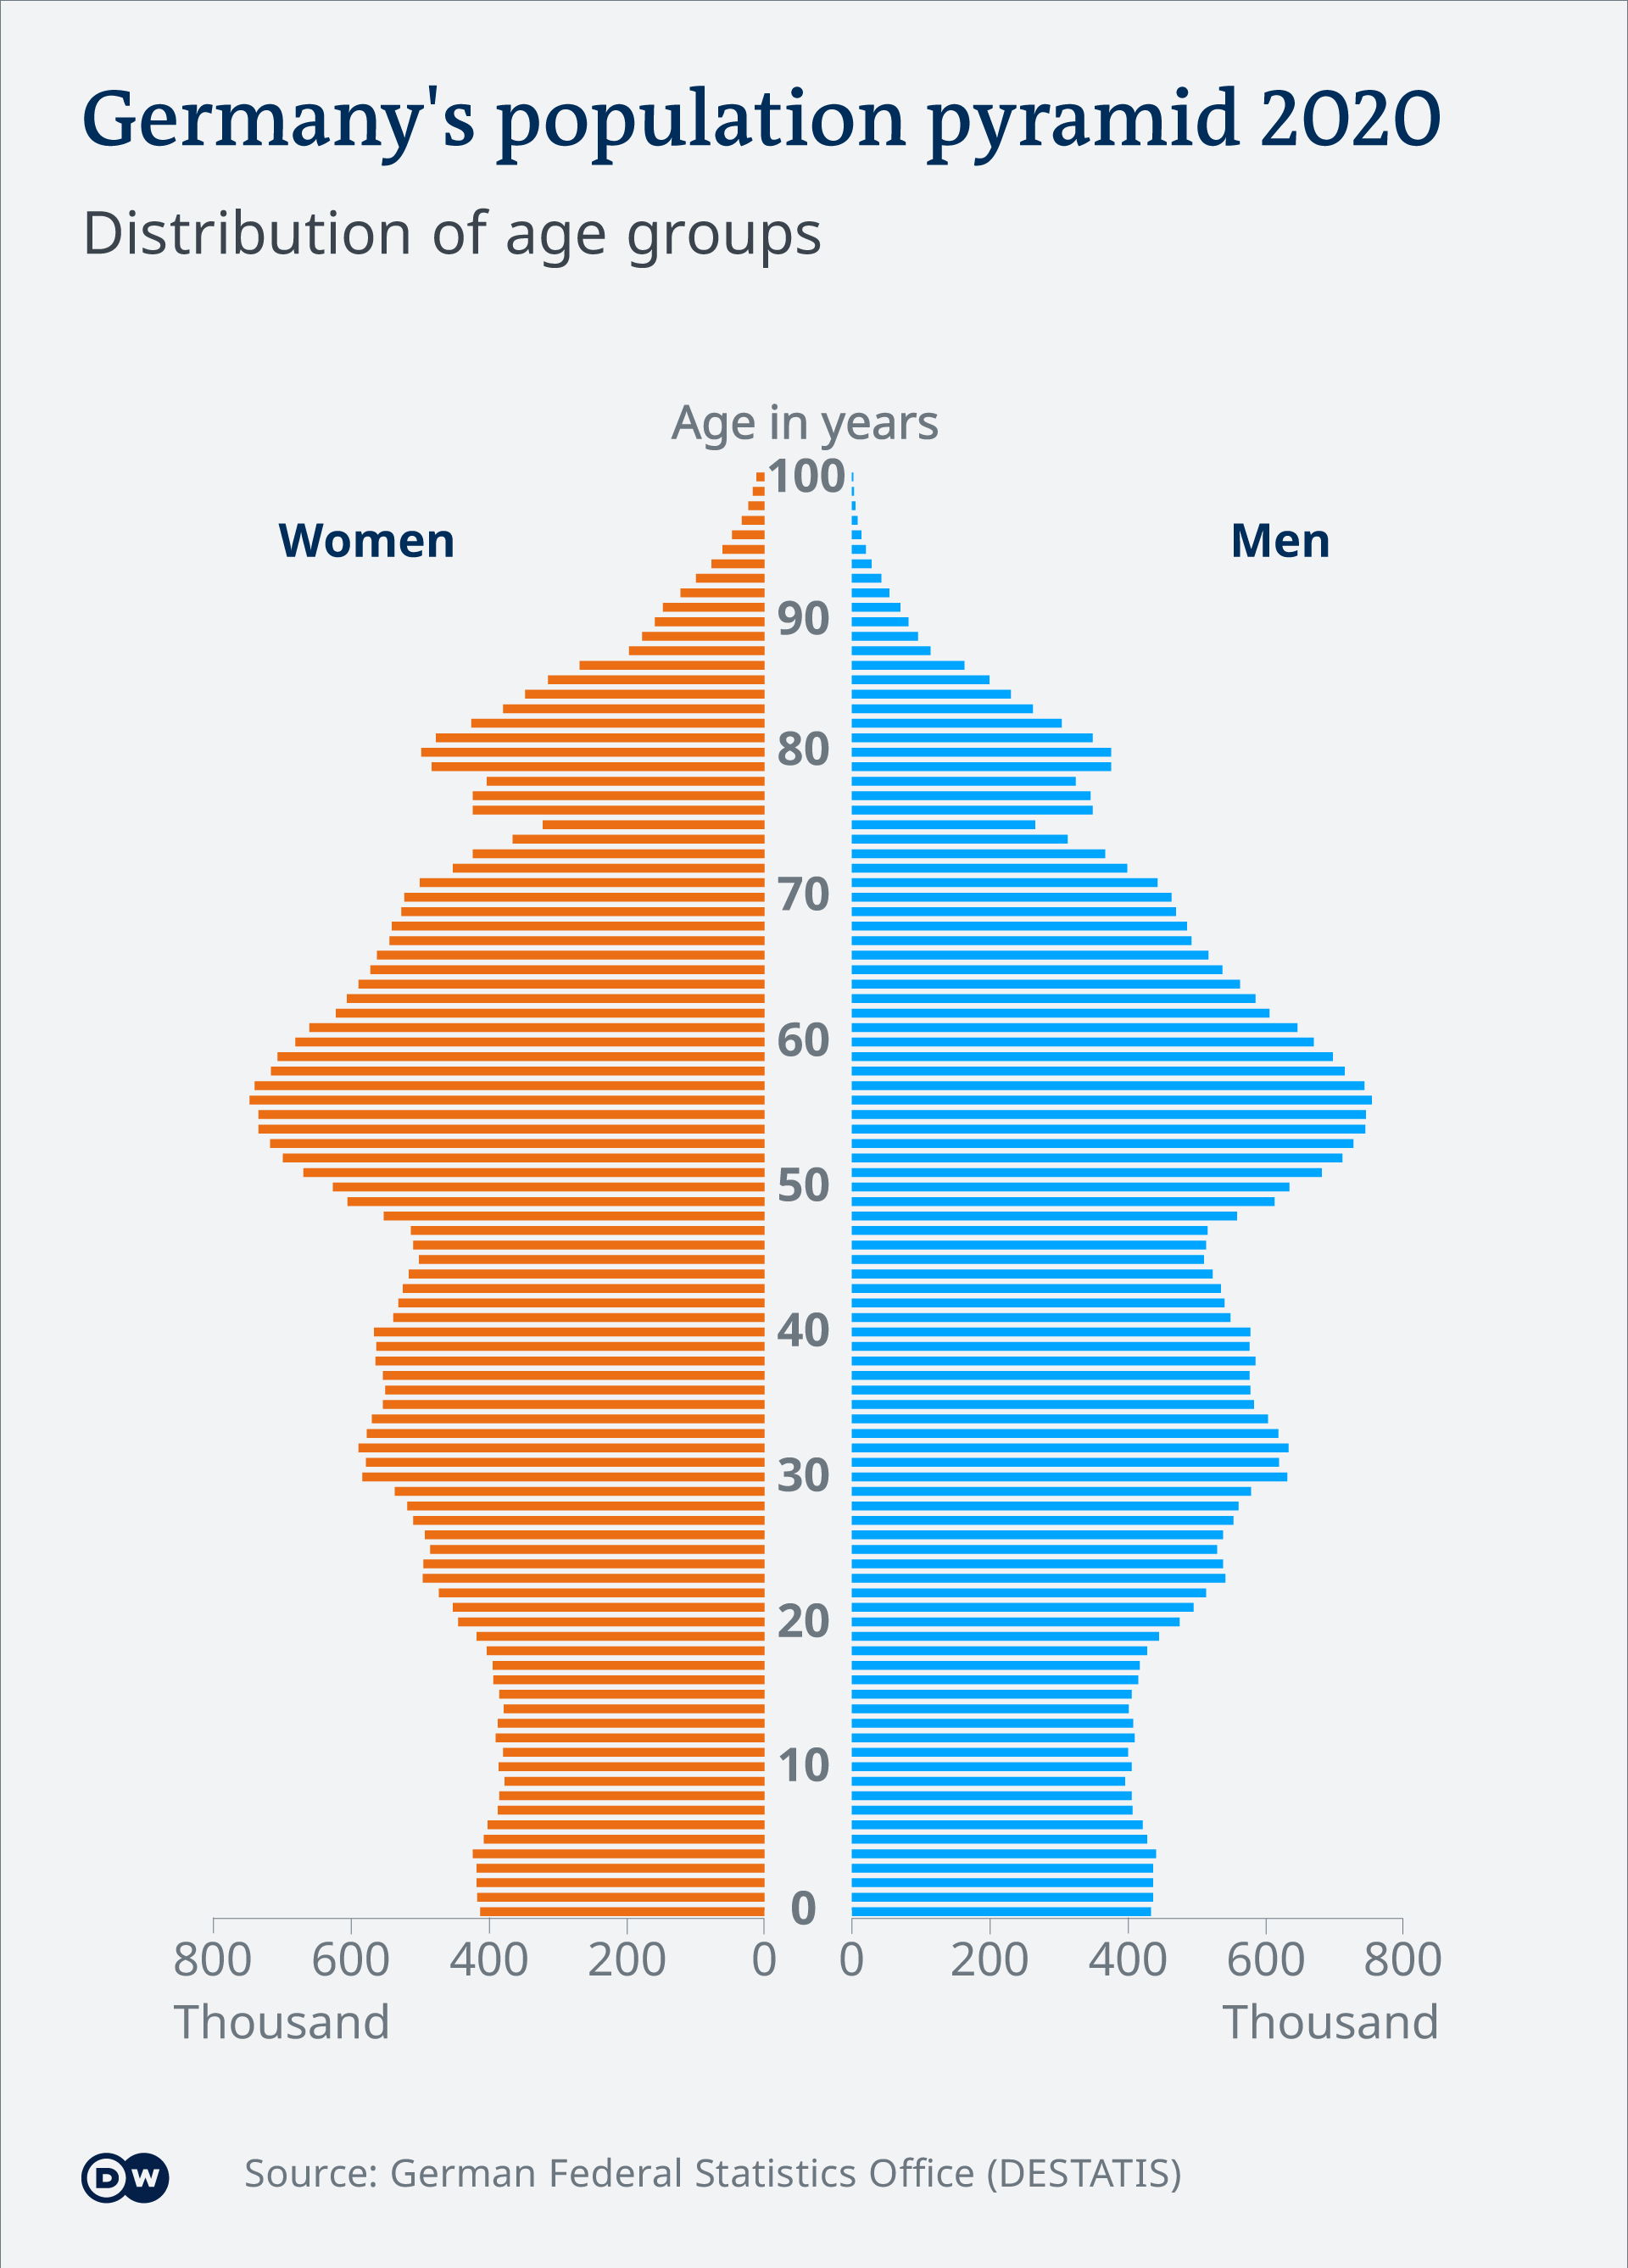 German population pyramid for 2020